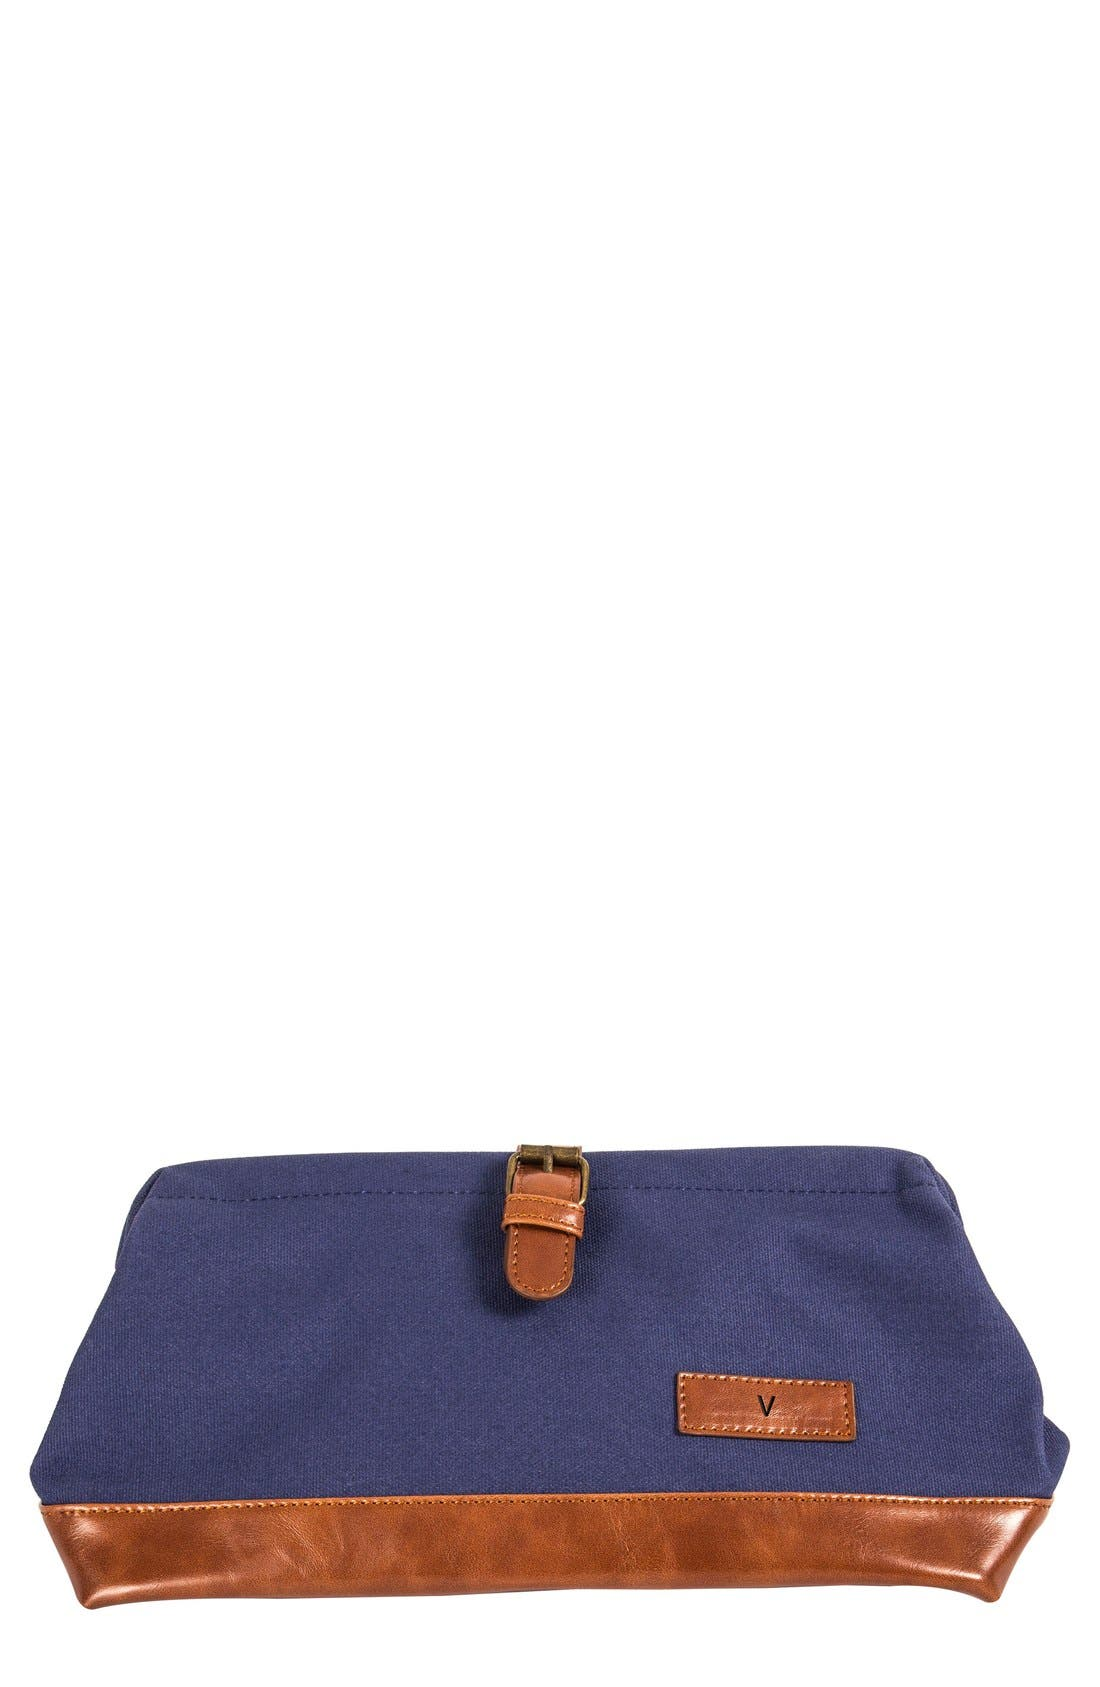 Monogram Travel Case,                             Main thumbnail 77, color,